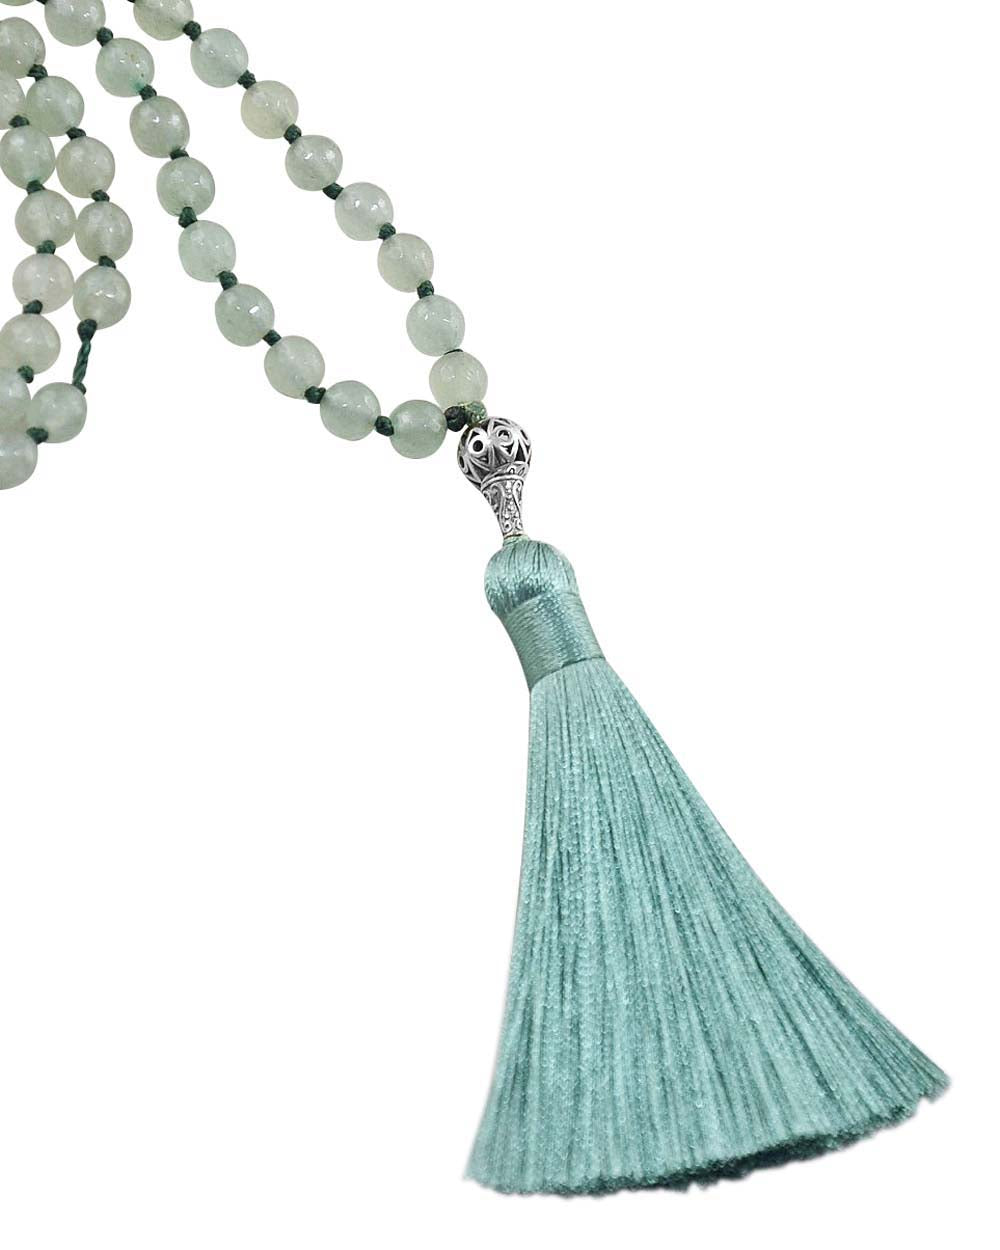 Aventurine Mala Confidence and Enlightenment